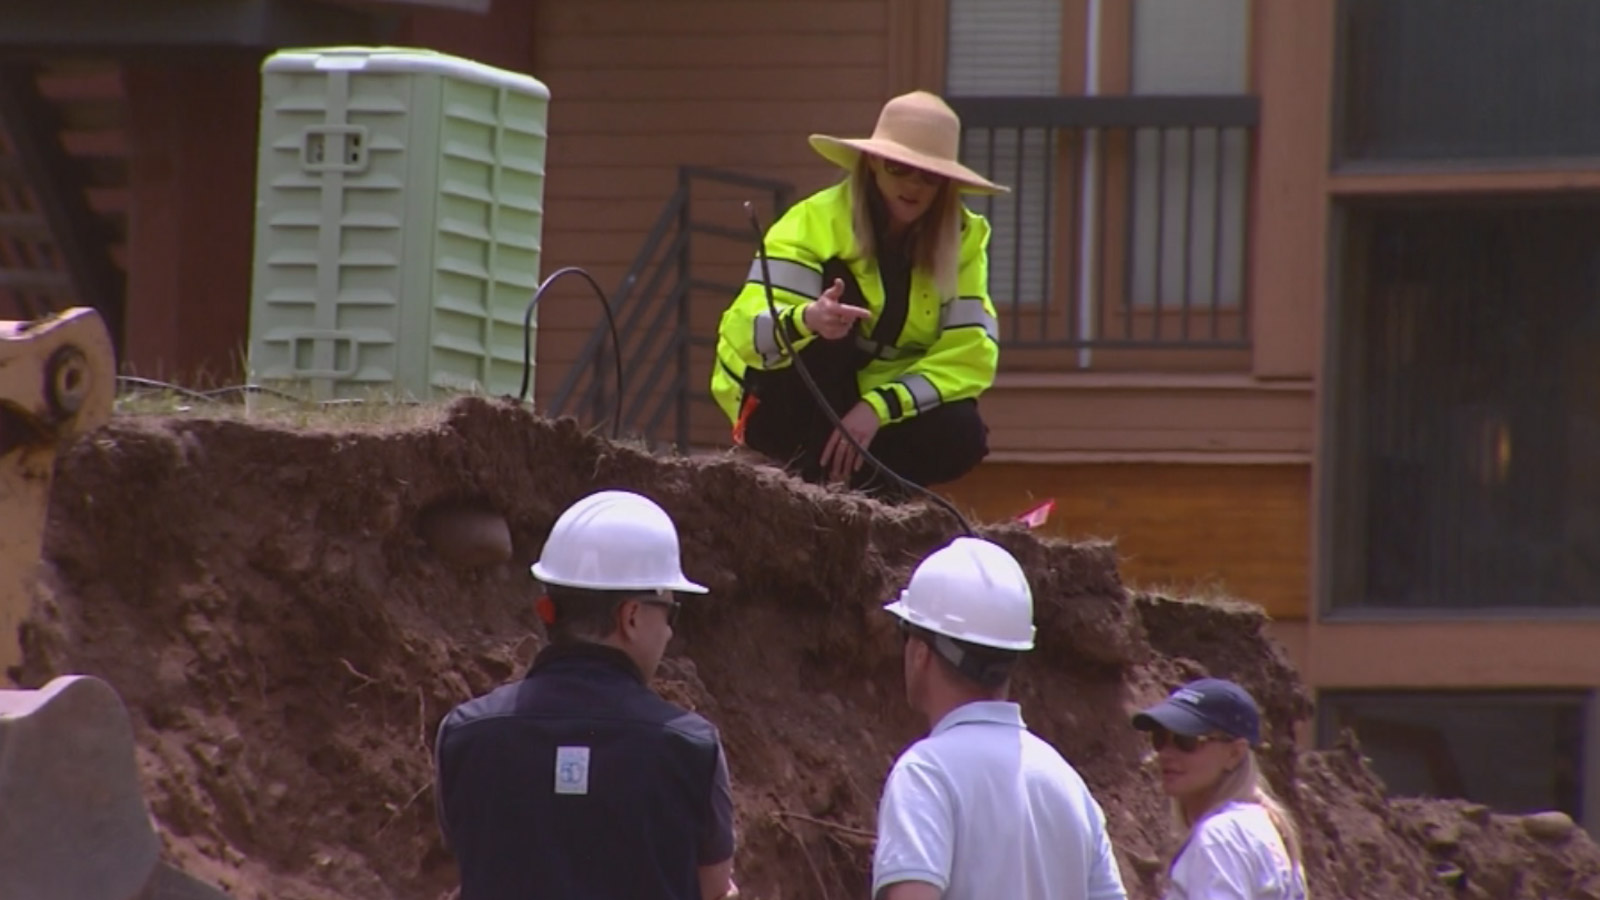 Human remains were discovered at a construction site in Vail (credit: CBS)